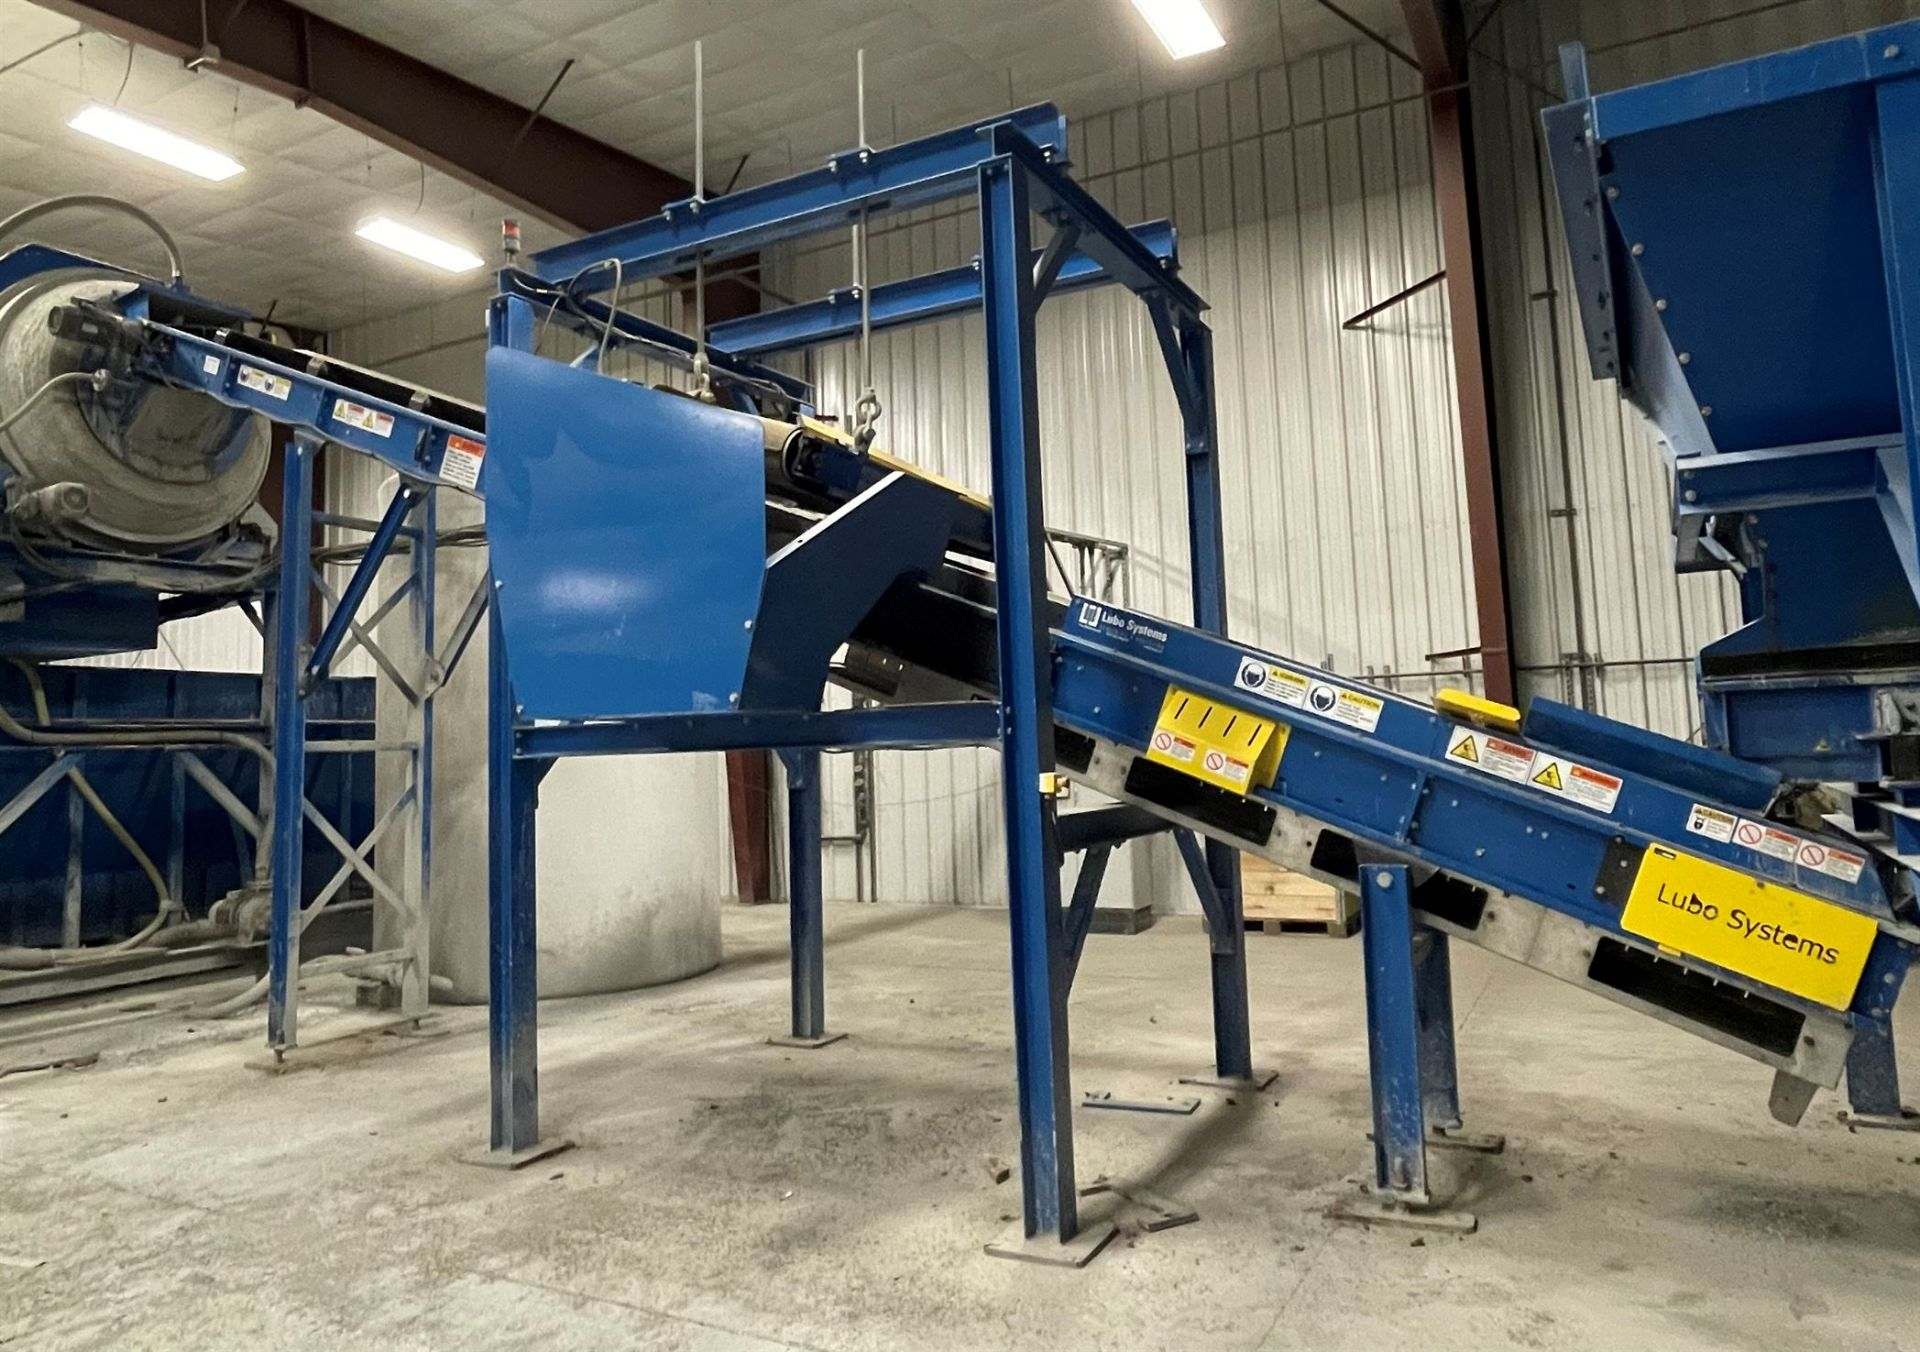 2015 LUBO SYSTEMS TBL 600x9500 Inclined Belt Conveyor, s/n 800108-0130, 600mm x 9500mm, SEW 3.7 kW - Image 2 of 3